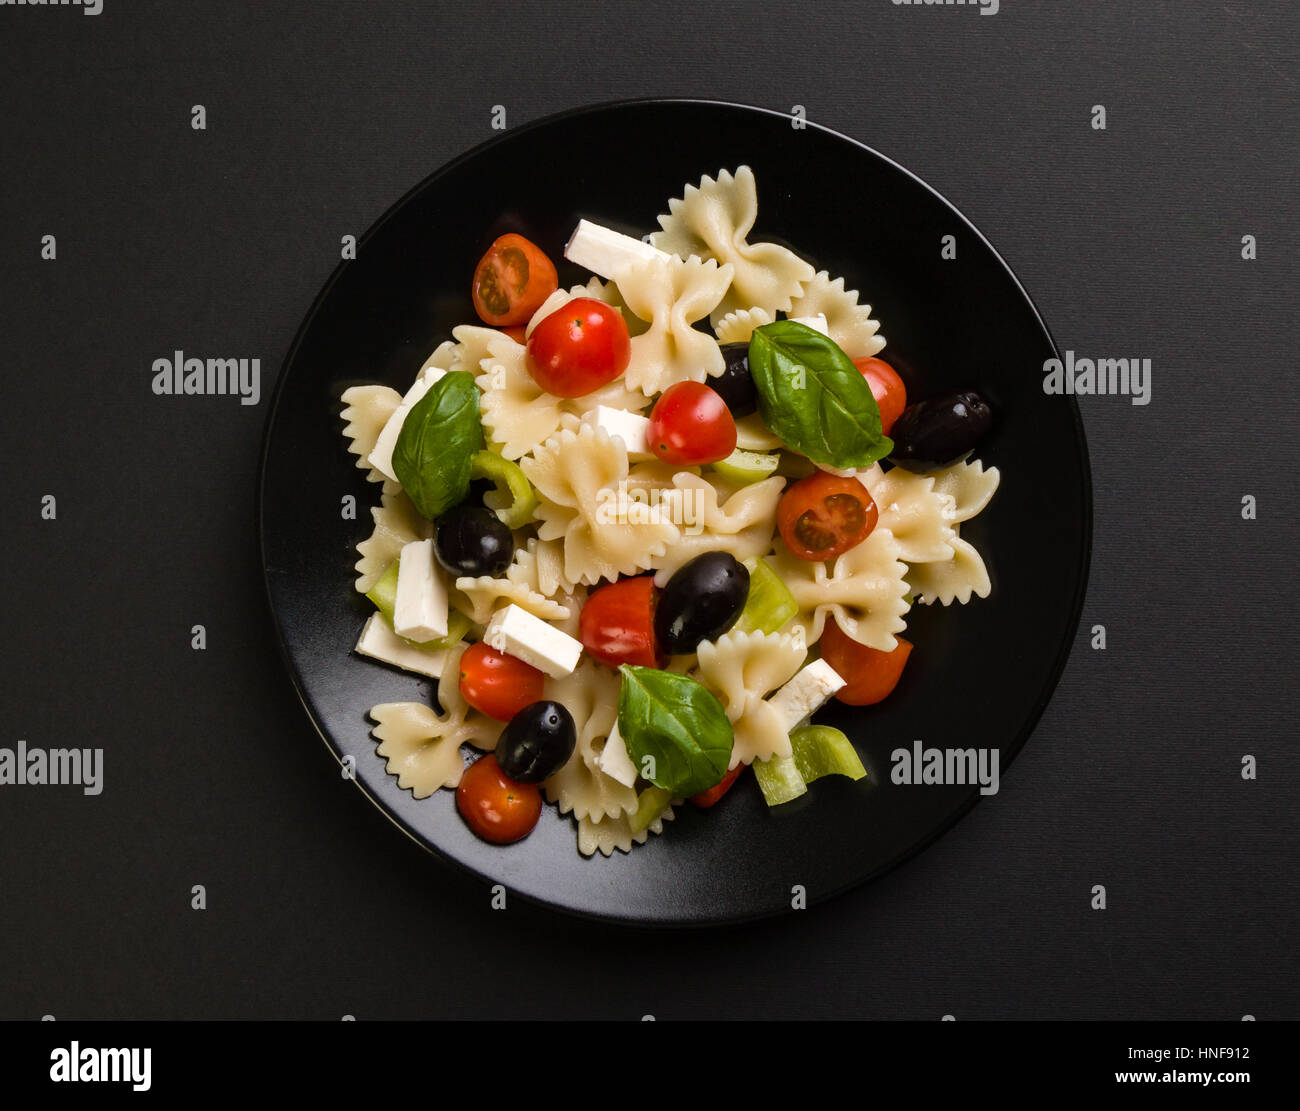 farfalle salad with tomato, basil, olive, pepper and cheese on black plate - Stock Image